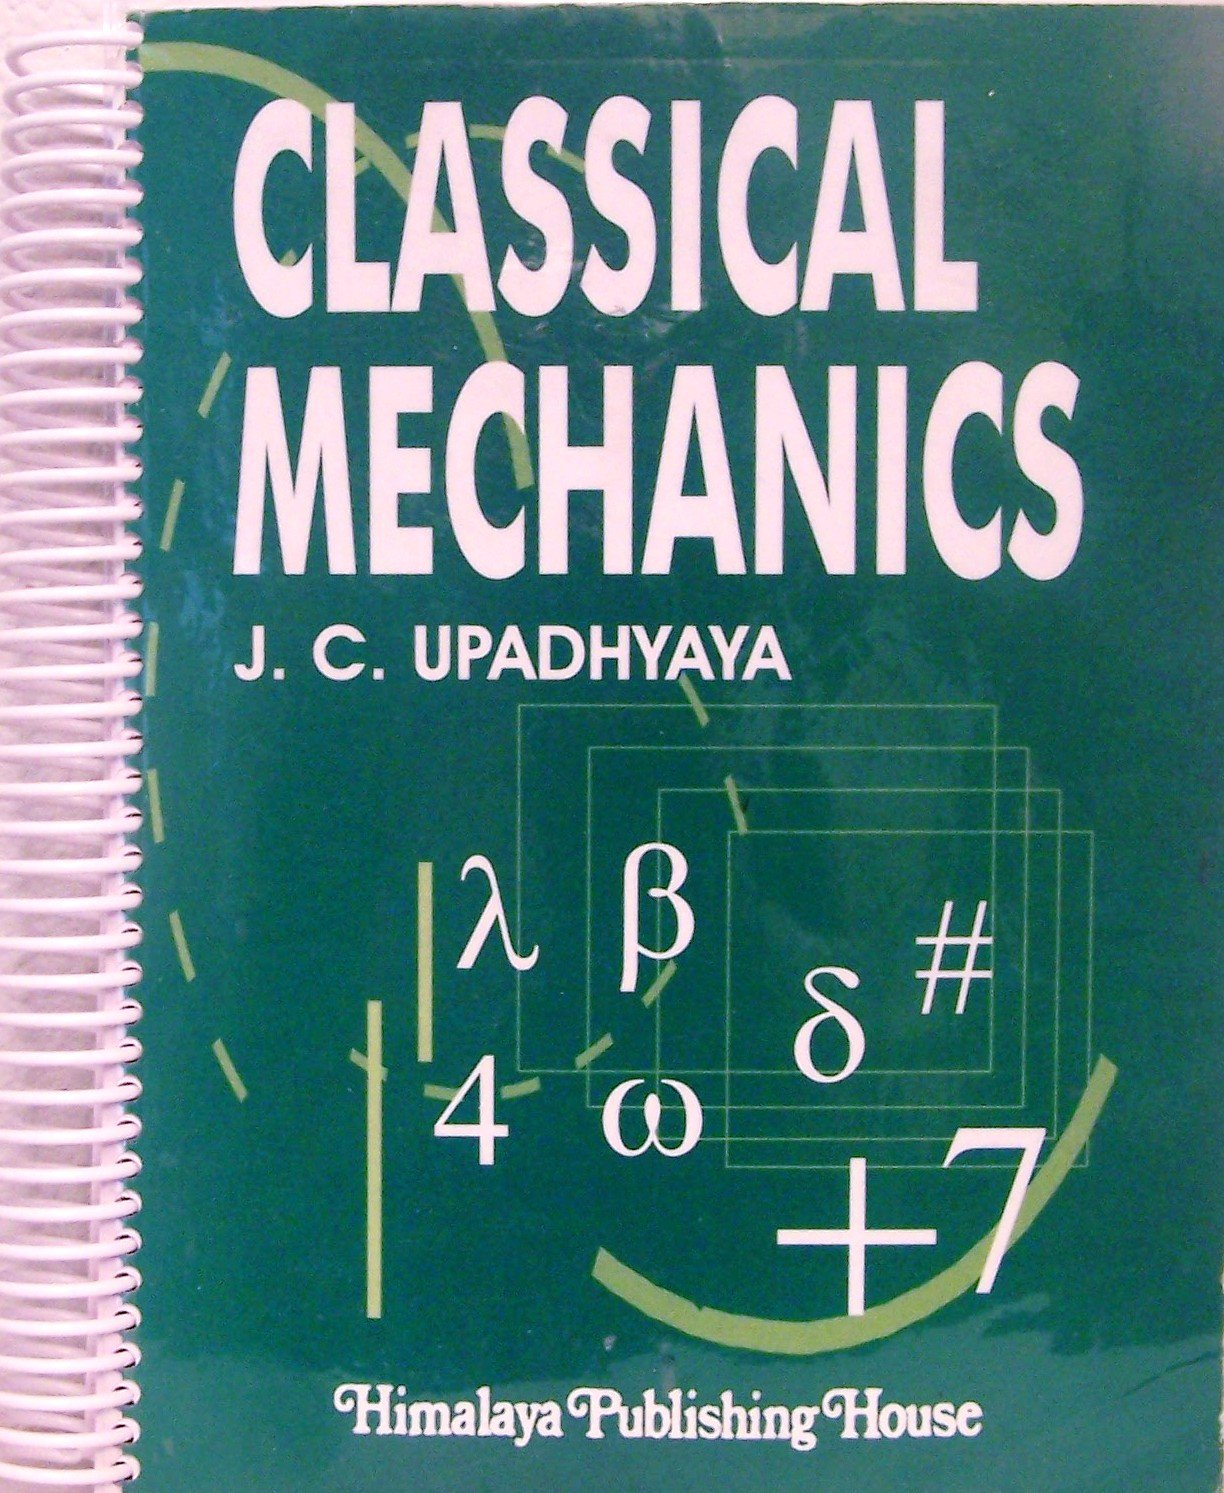 Classical Mechanics: Dr J C Upadhyaya: 9788183182966: Amazon com: Books